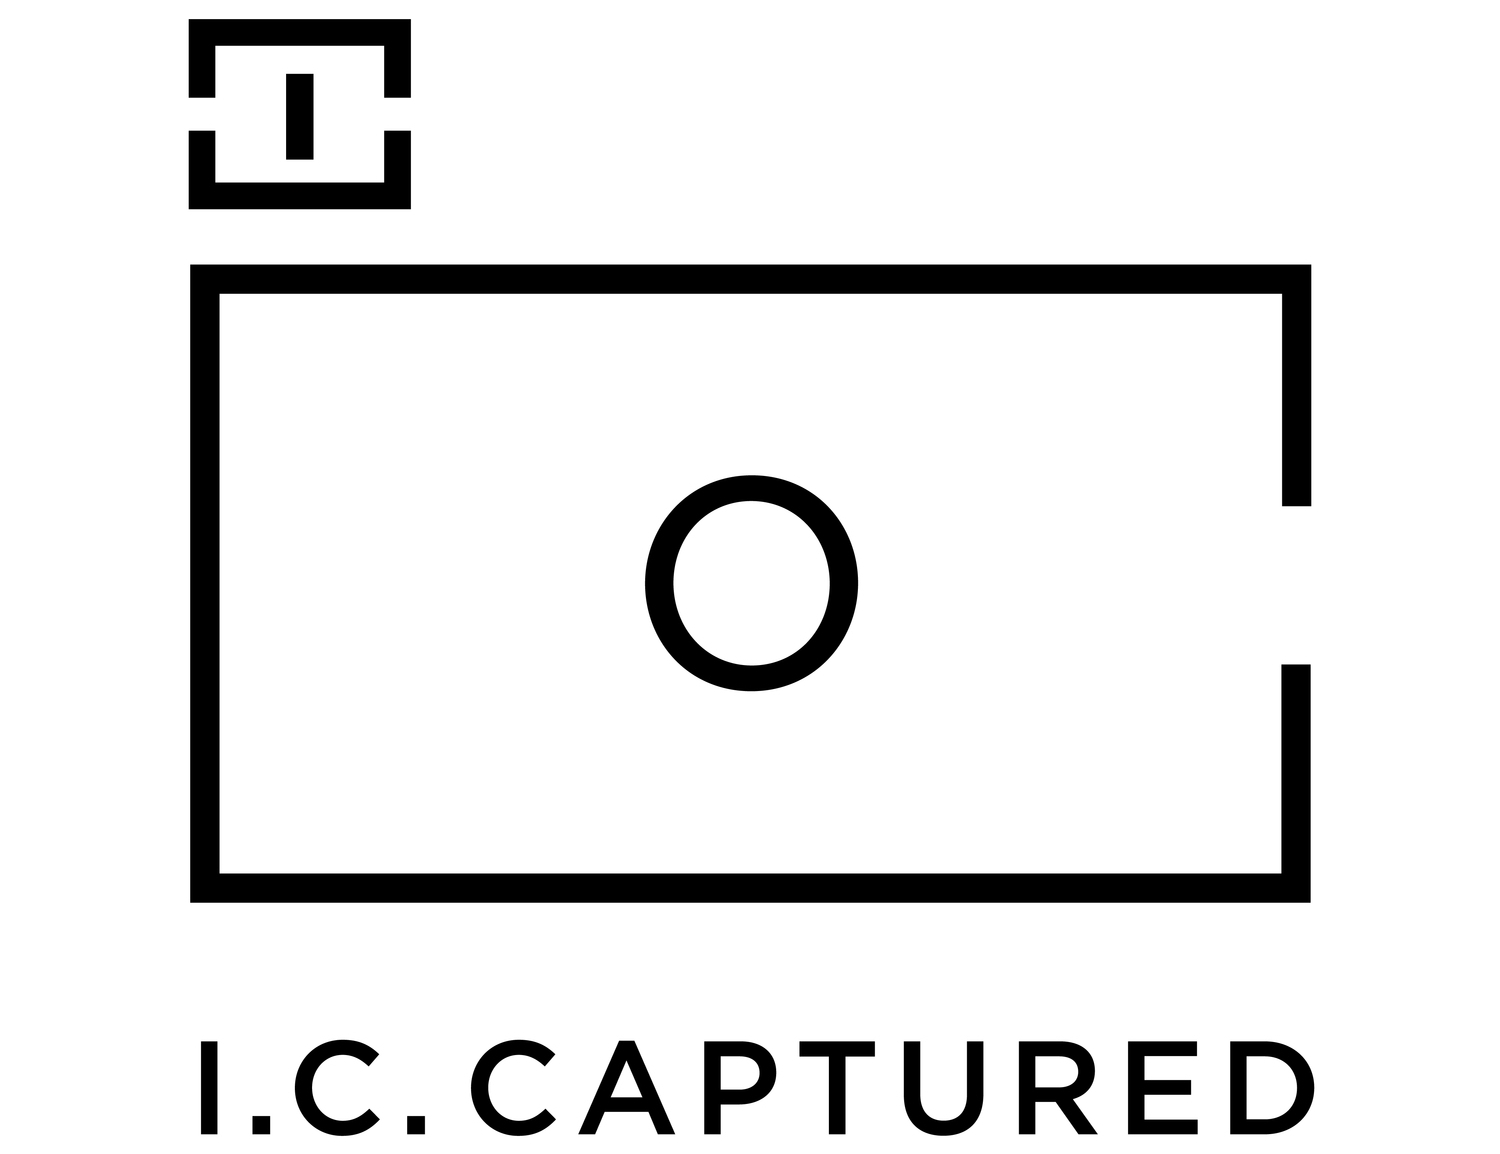 I.C. CAPTURED